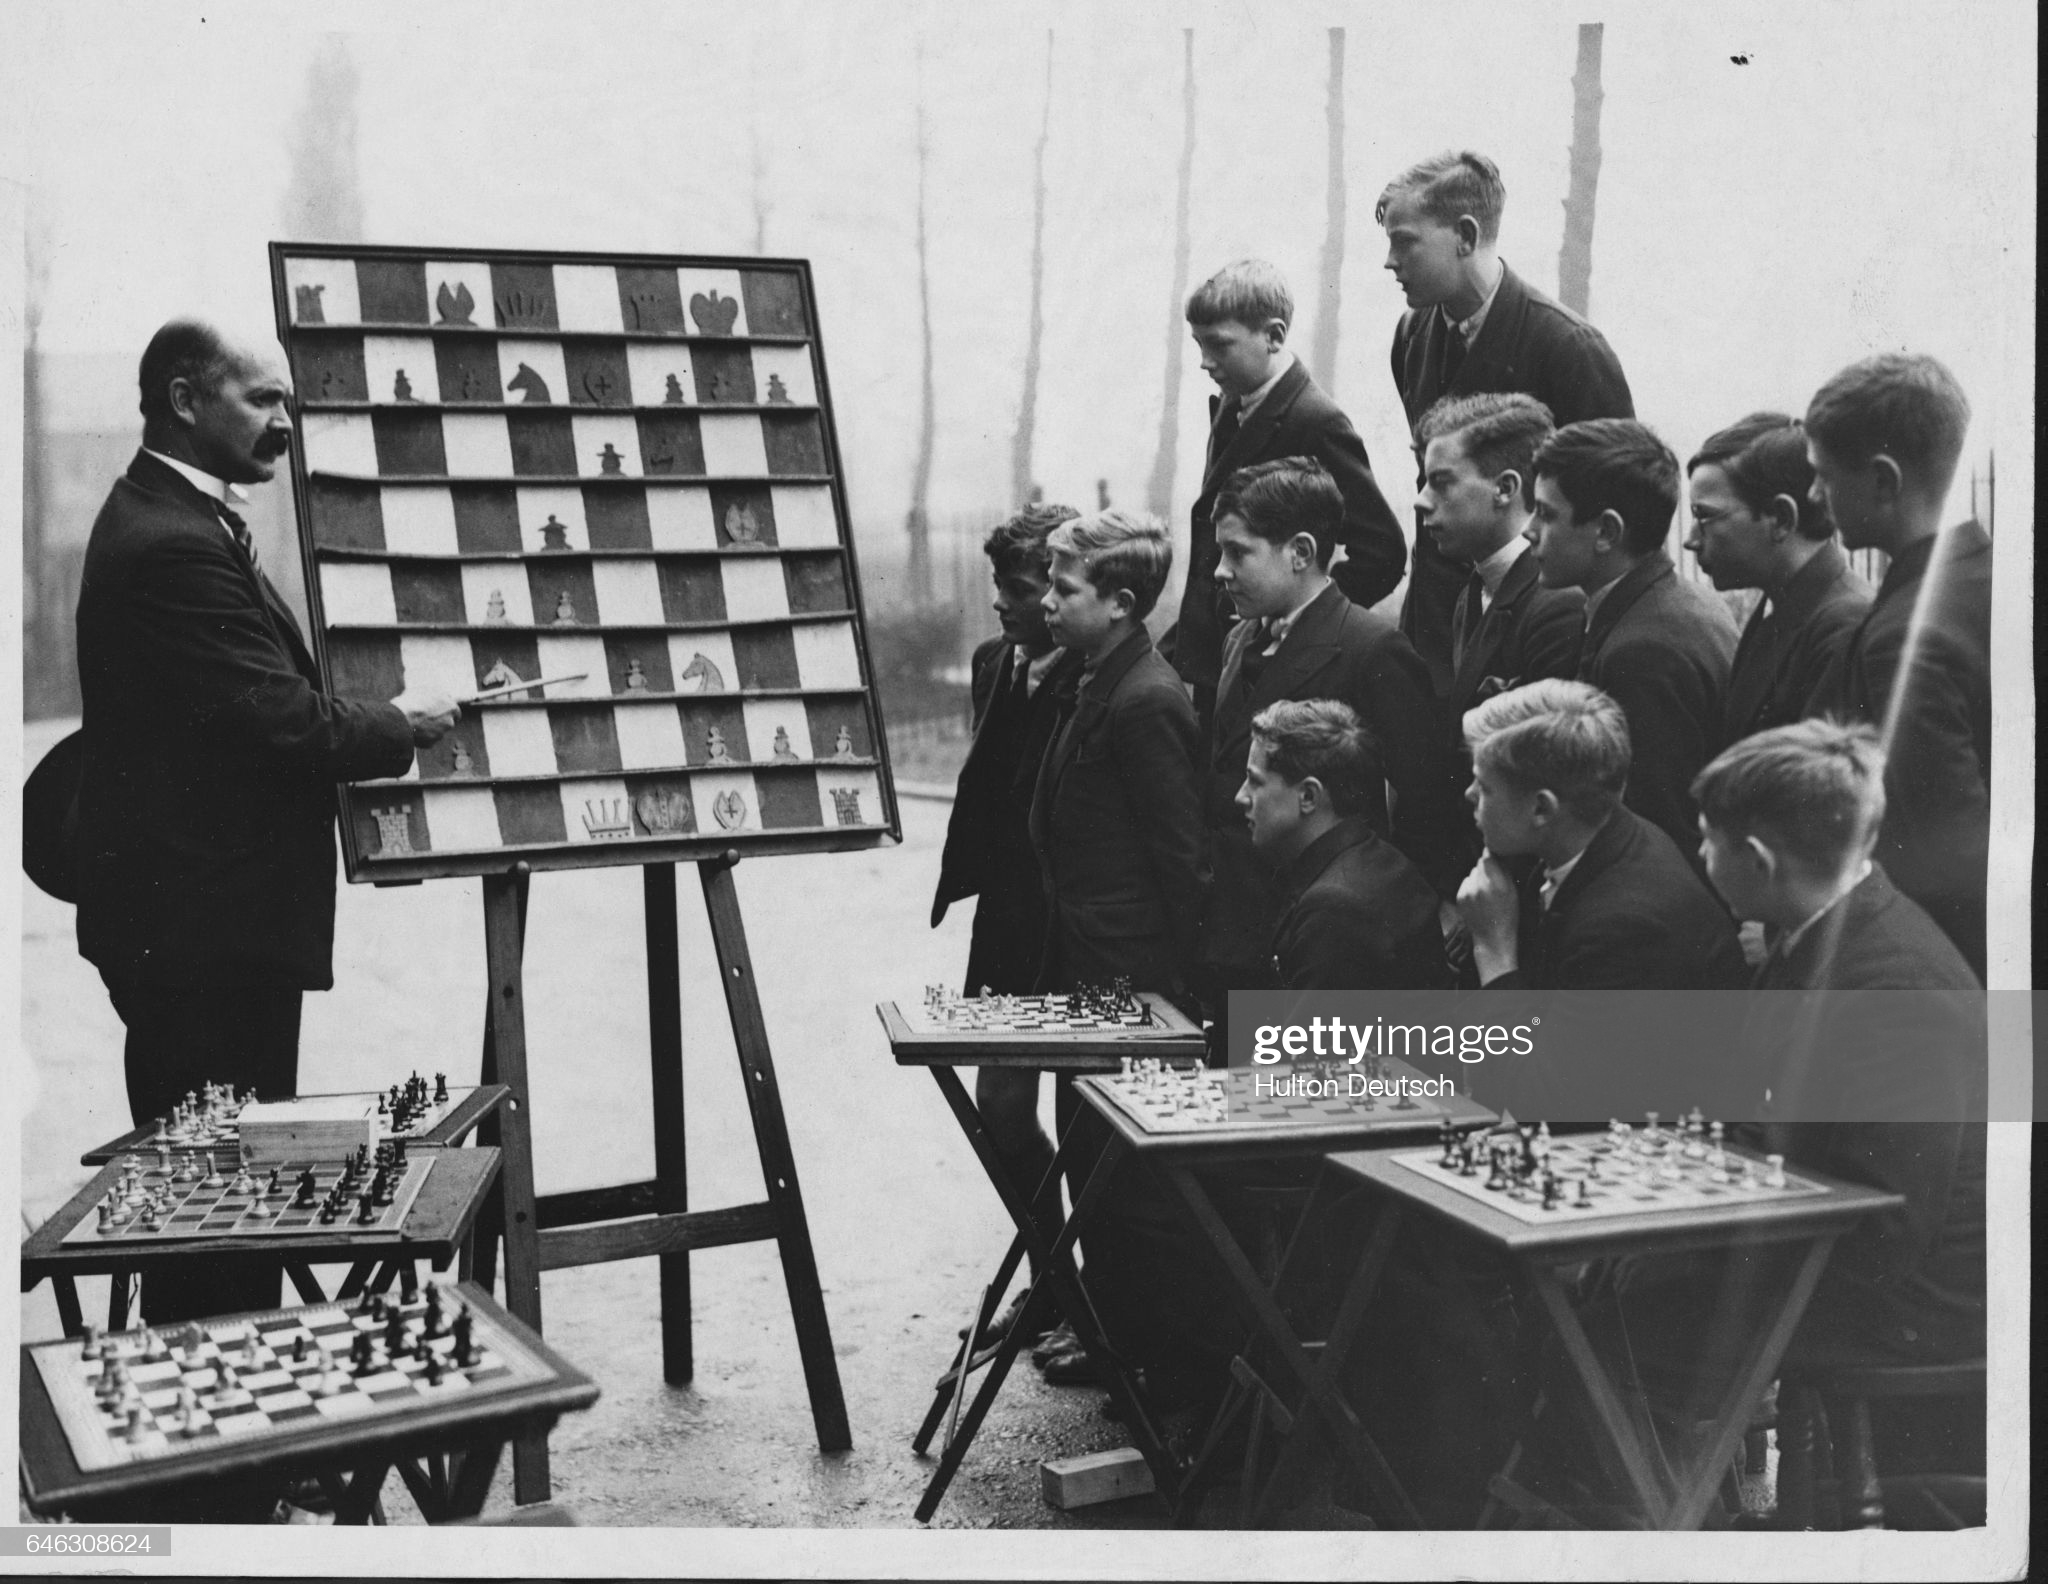 Headmaster C.S. Kipping instructs a classroom of boys on the rules of chess using his demonstration board at Wednesbury High School. (Photo by © Hulton-Deutsch Collection/CORBIS/Corbis via Getty Images)